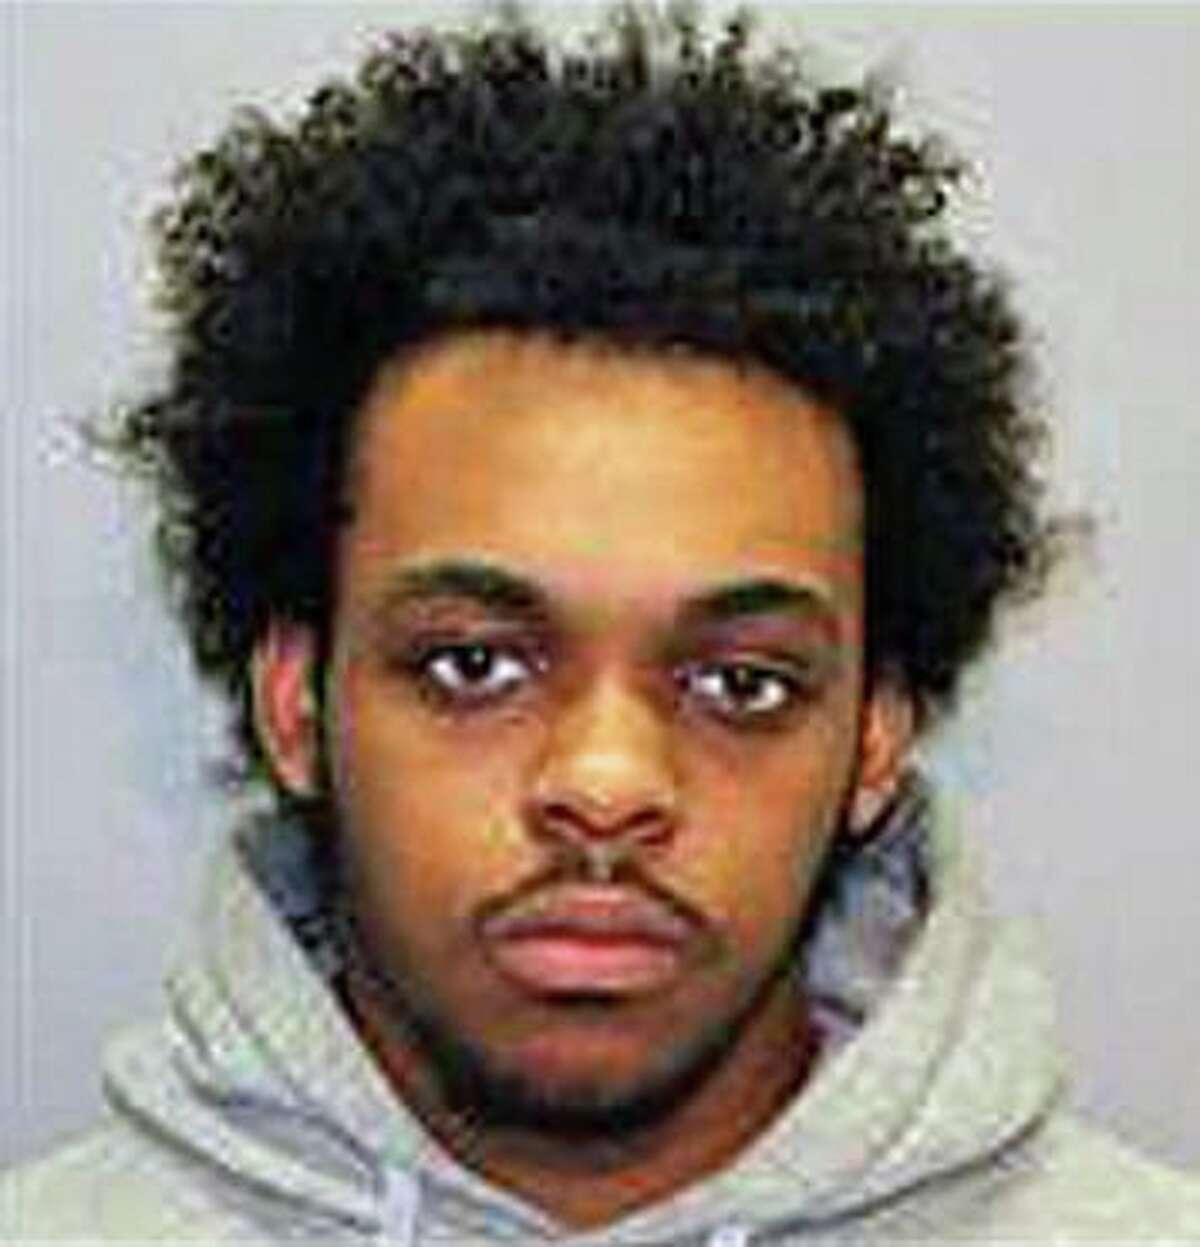 Matthew O'Banner, 20, was held on a fugitive from justice charge and a $2 million bond after he was taken into custody on Thursday, Aug. 5, 2021, in connection with a deadly Middletown, Conn., shooting from back in May.